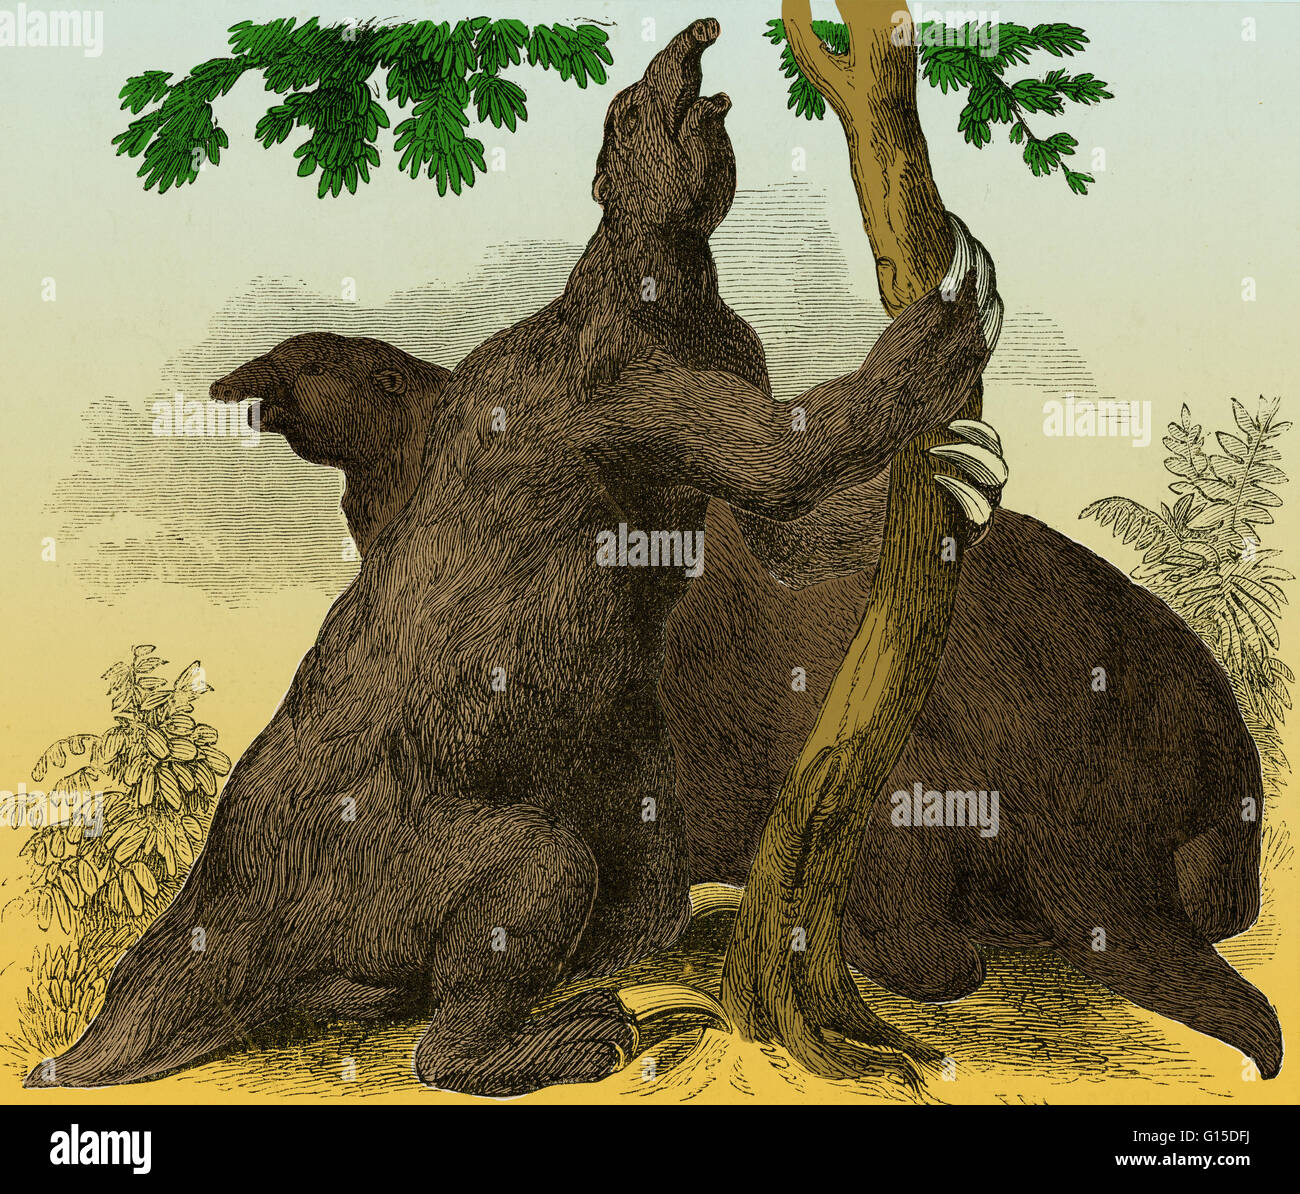 Megatherium restored, according to the designs of W. Hawkins. Megatherium (Great Beast) was a genus of elephant - Stock Image